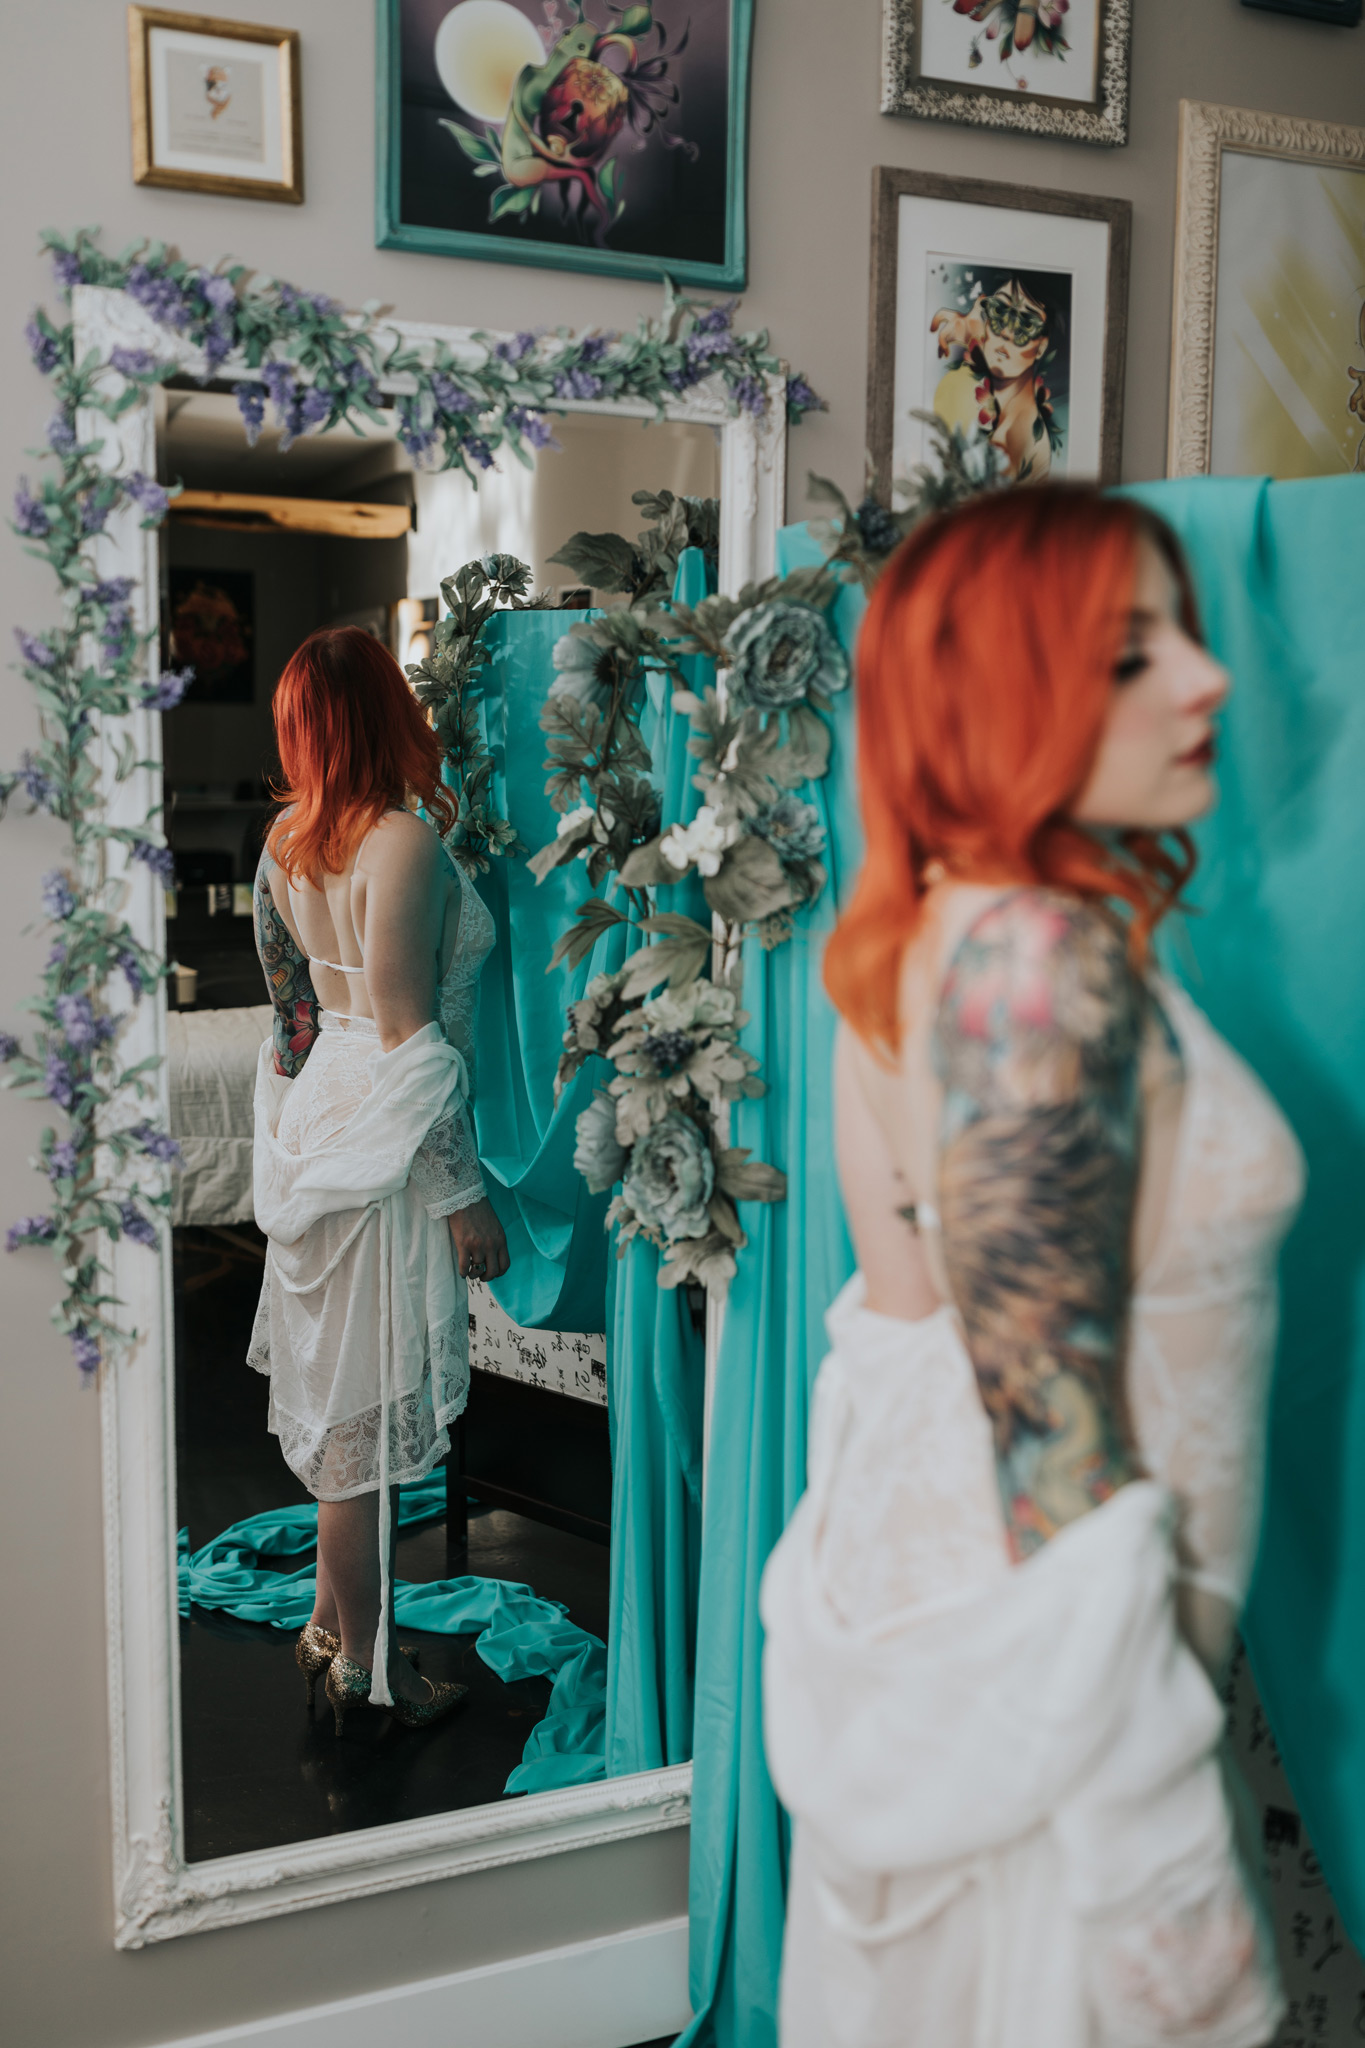 tattooed woman standing by mirror reflection bridal boudoir photo